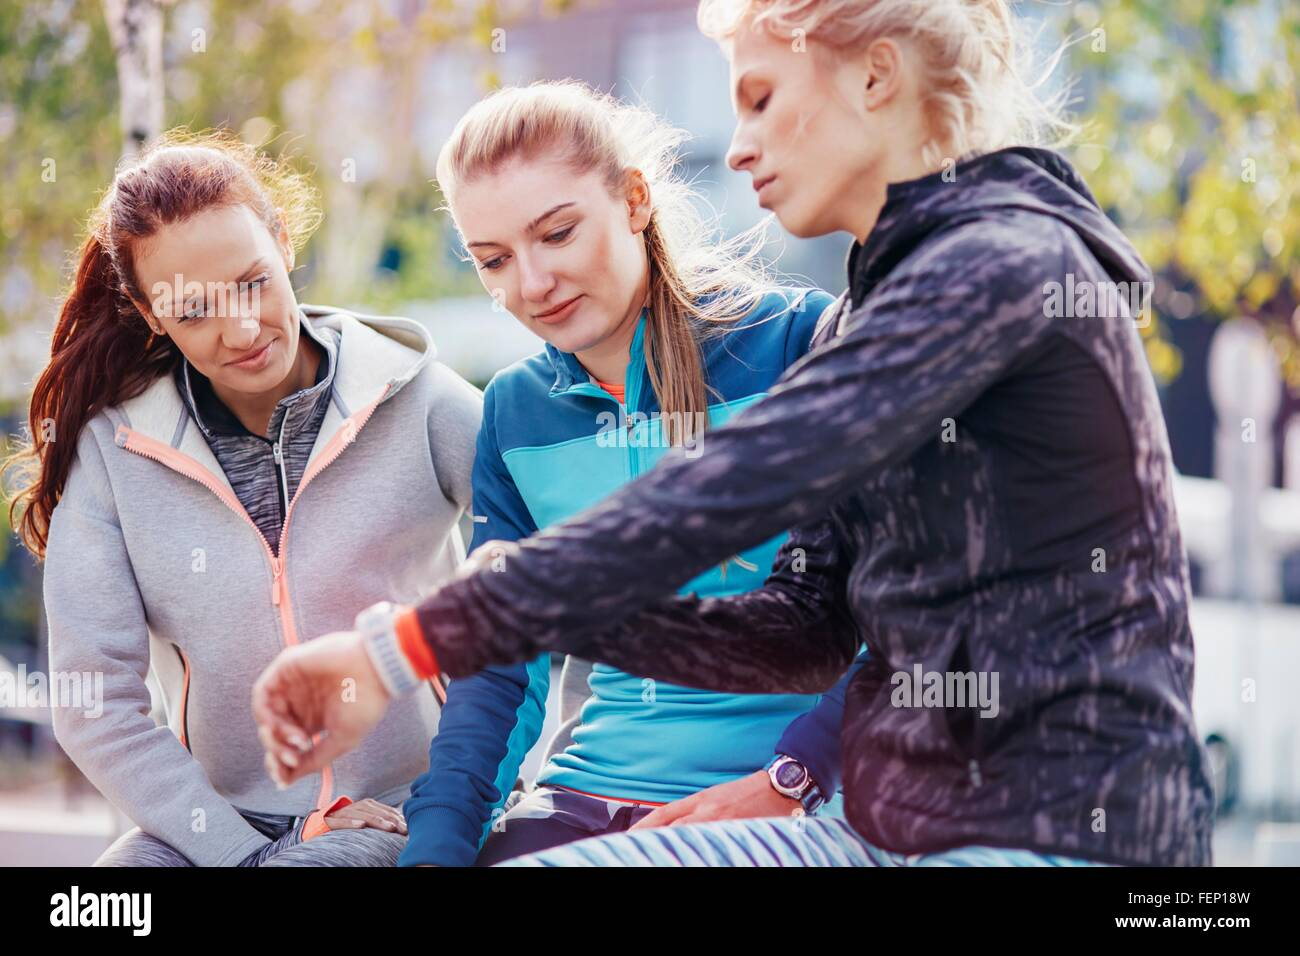 Three female runners coordinating times on smartwatch in city - Stock Image